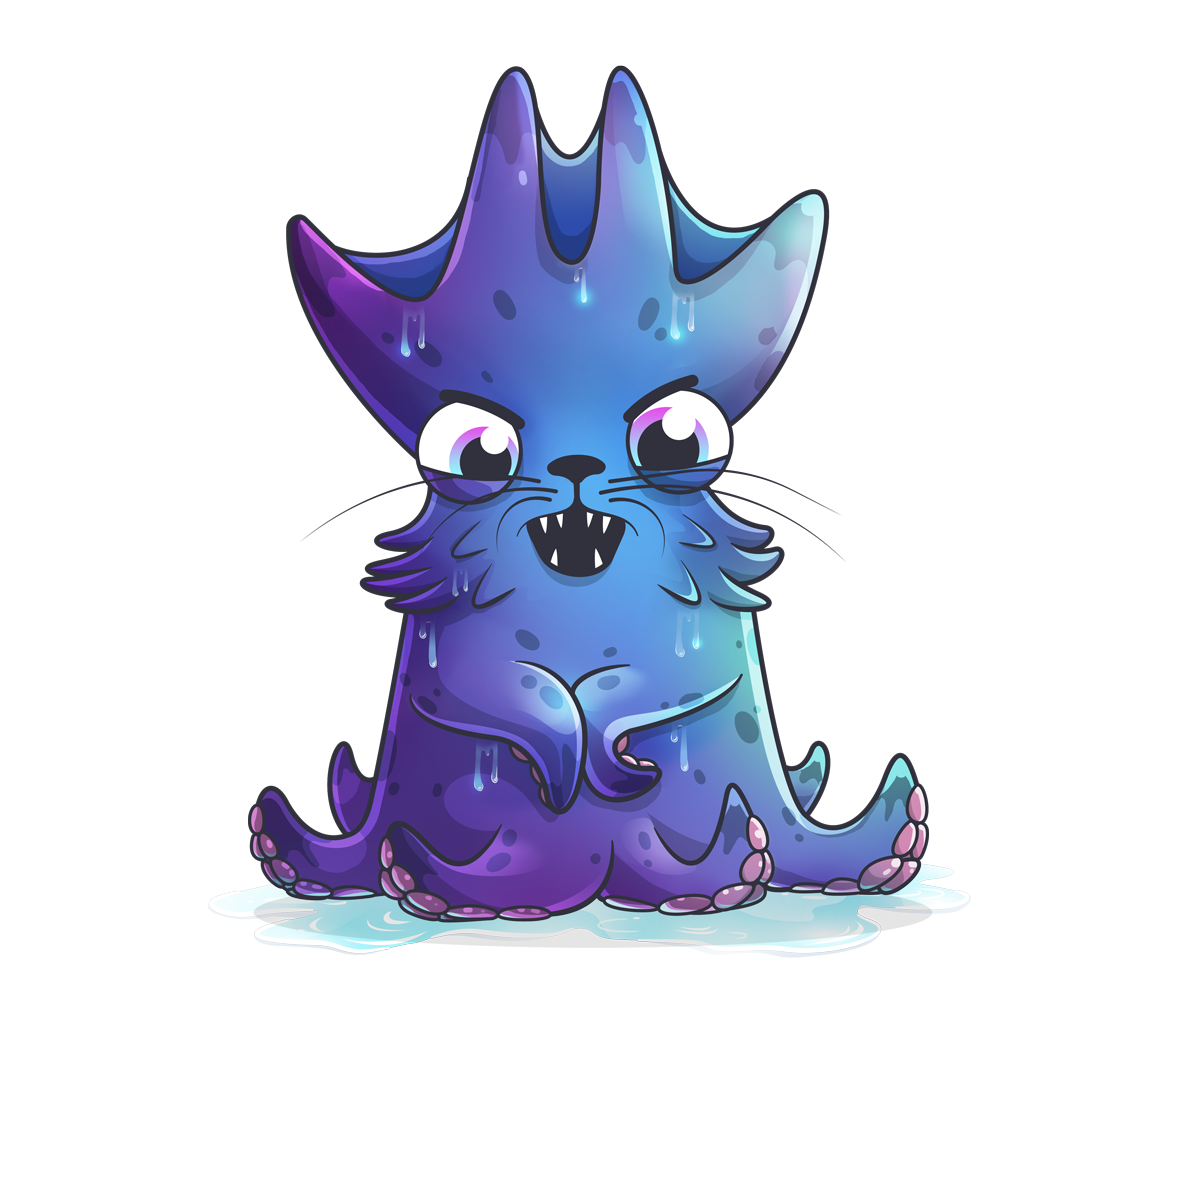 CryptoKitties Collect and breed digital cats! Rare